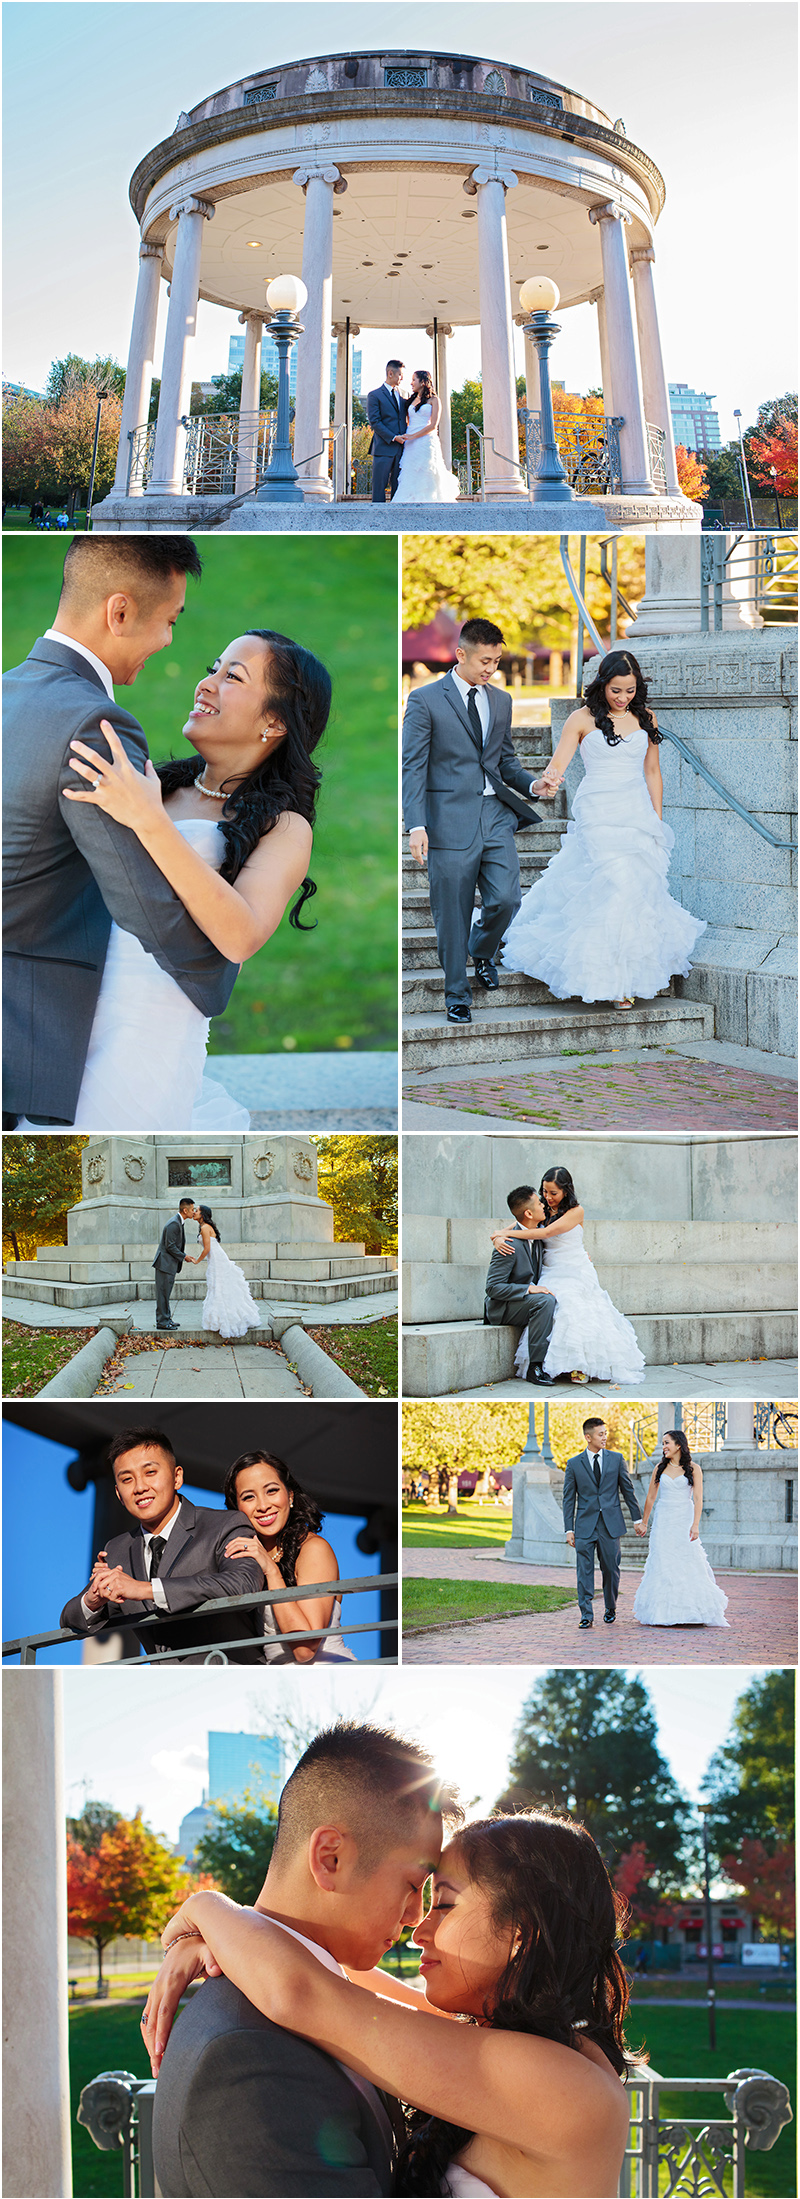 HYATT REGENCY WEDDING PHOTOS BOSTON MA